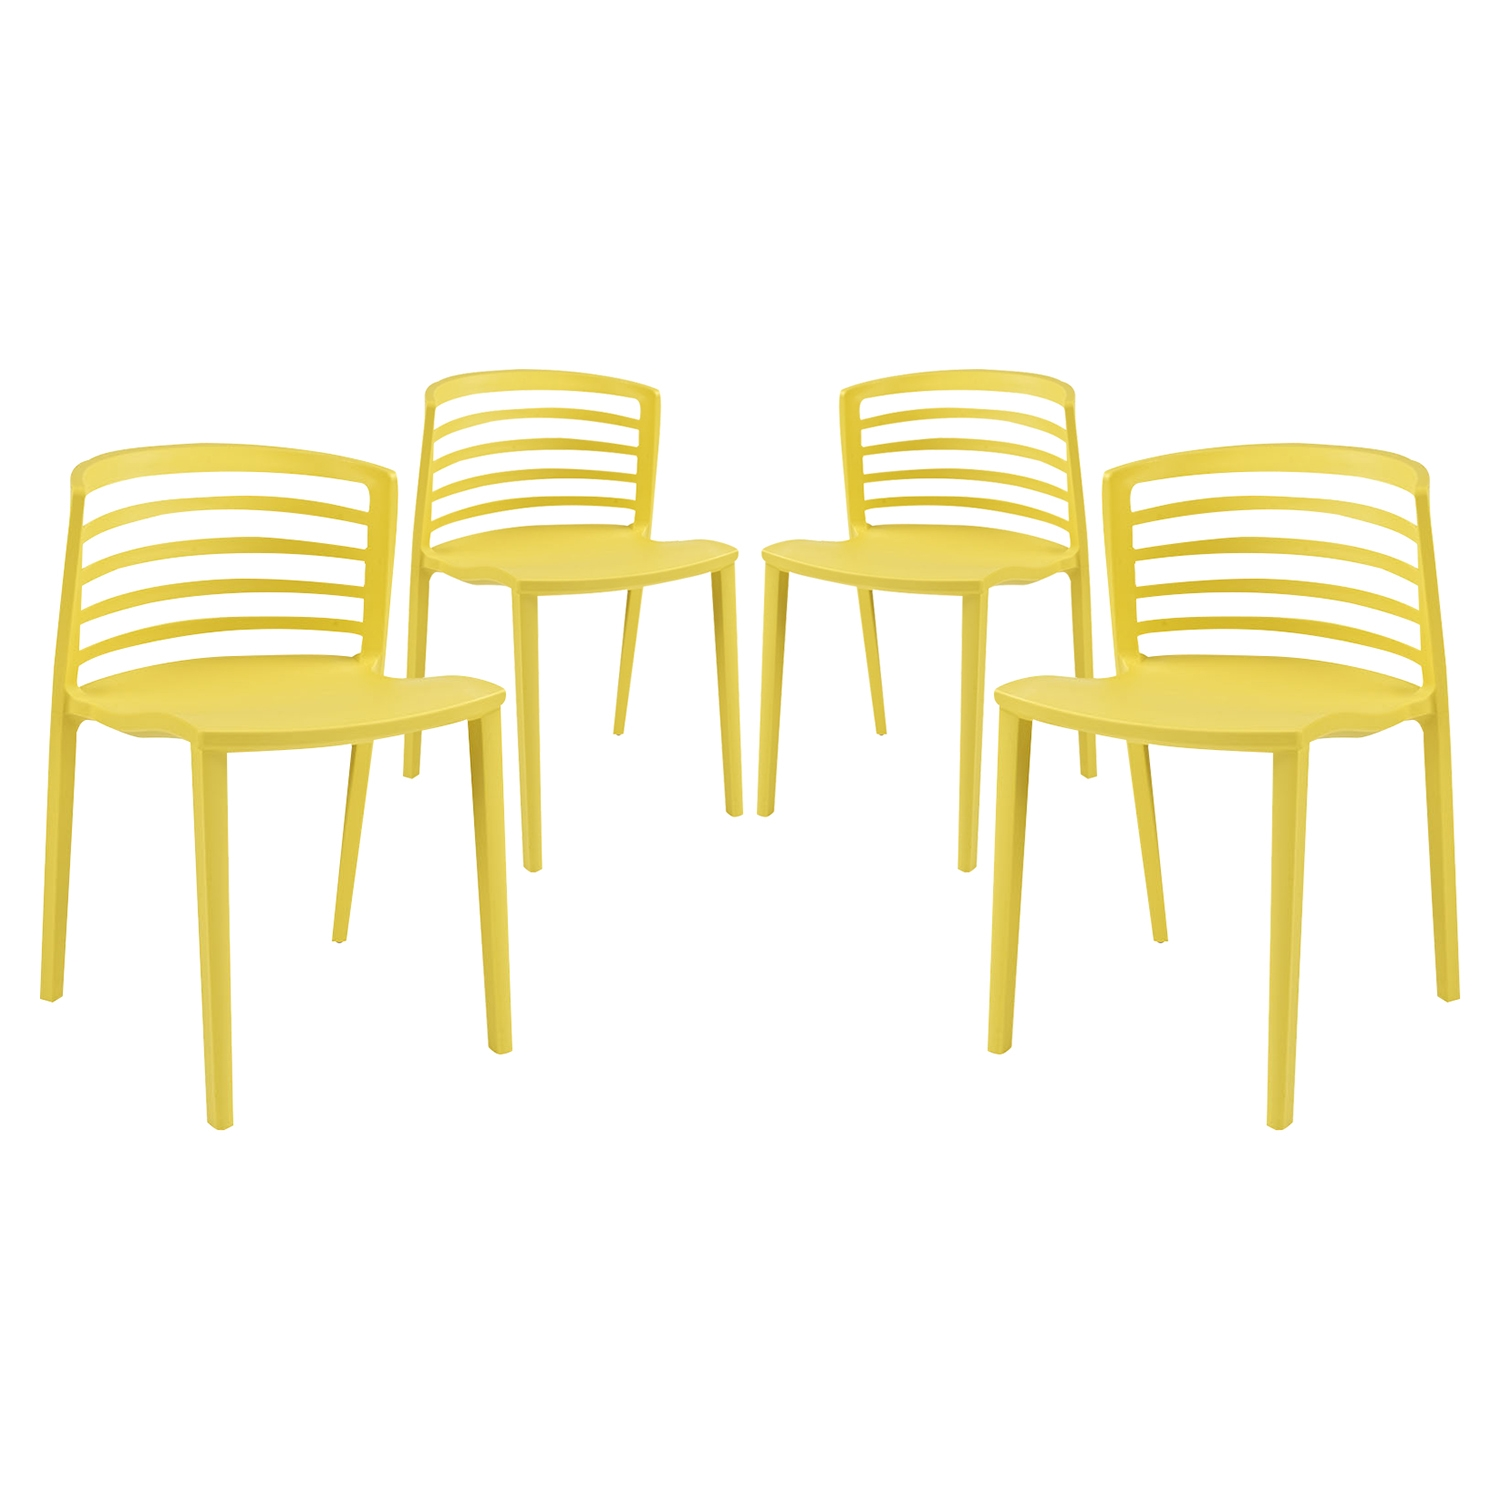 Curvy Backrest Dining Chair (Set of 4) - EEI-1315